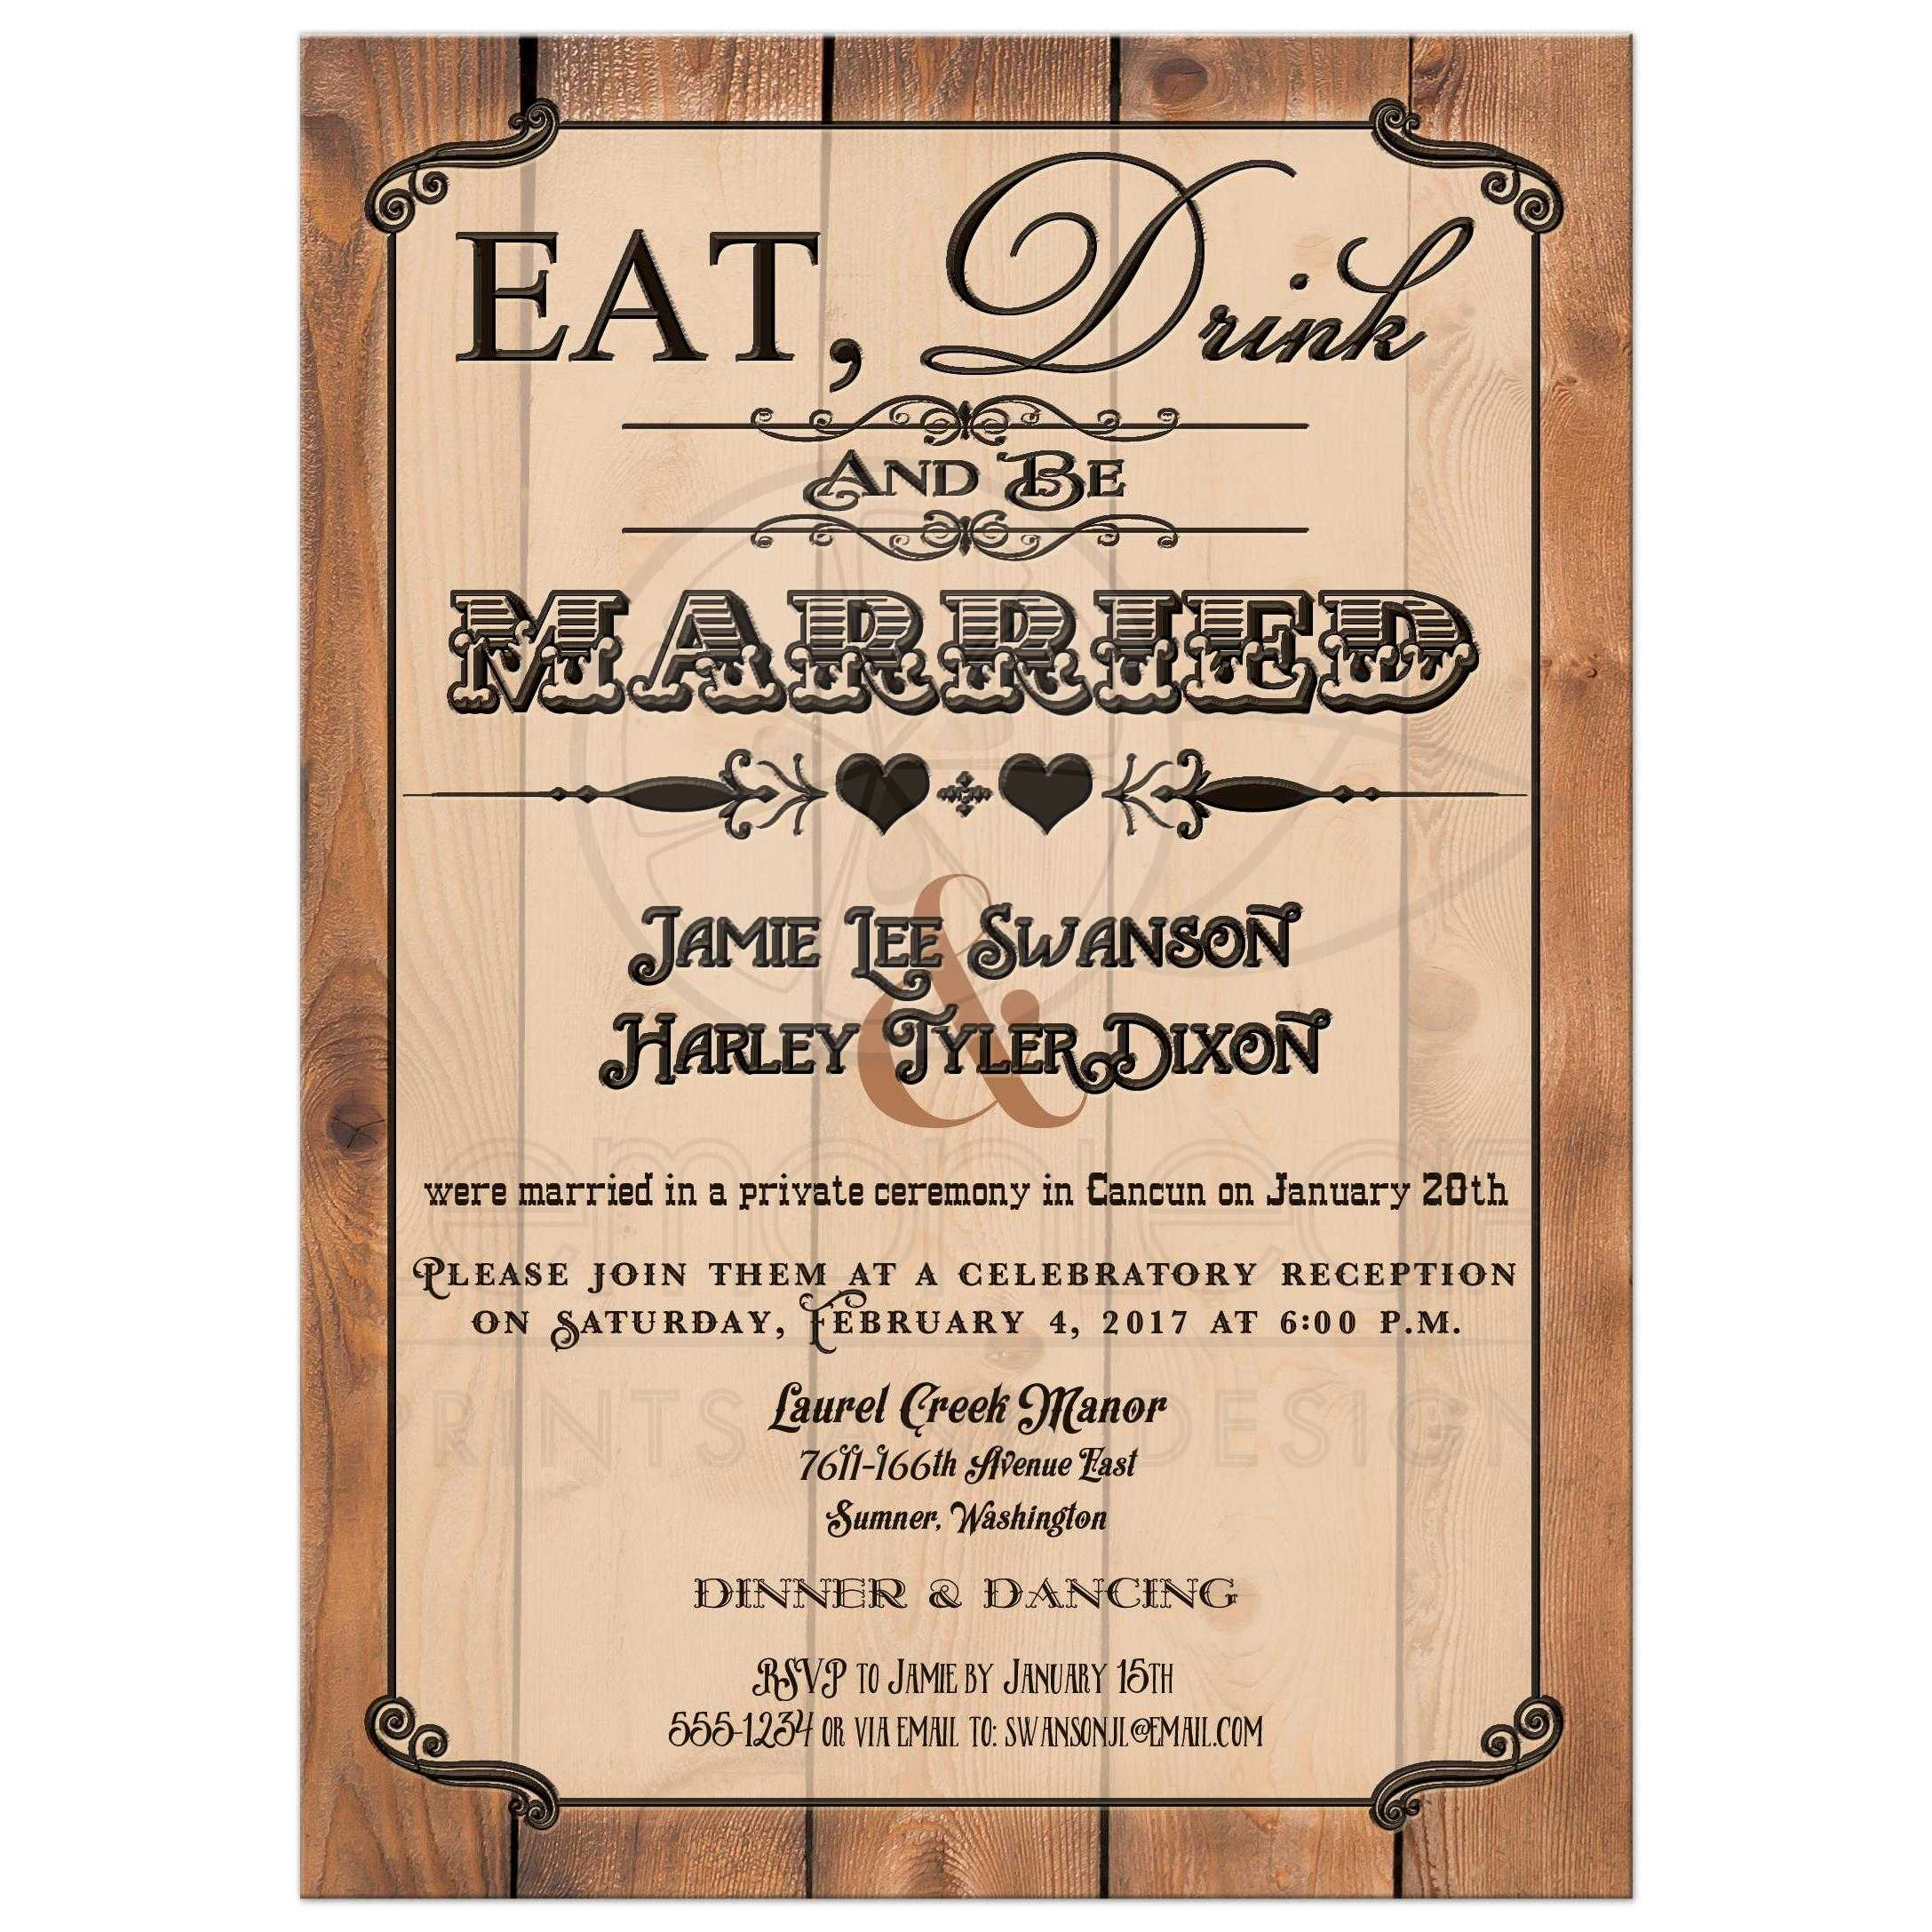 Post Wedding Reception Only Invitation Eat Drink And Be Married